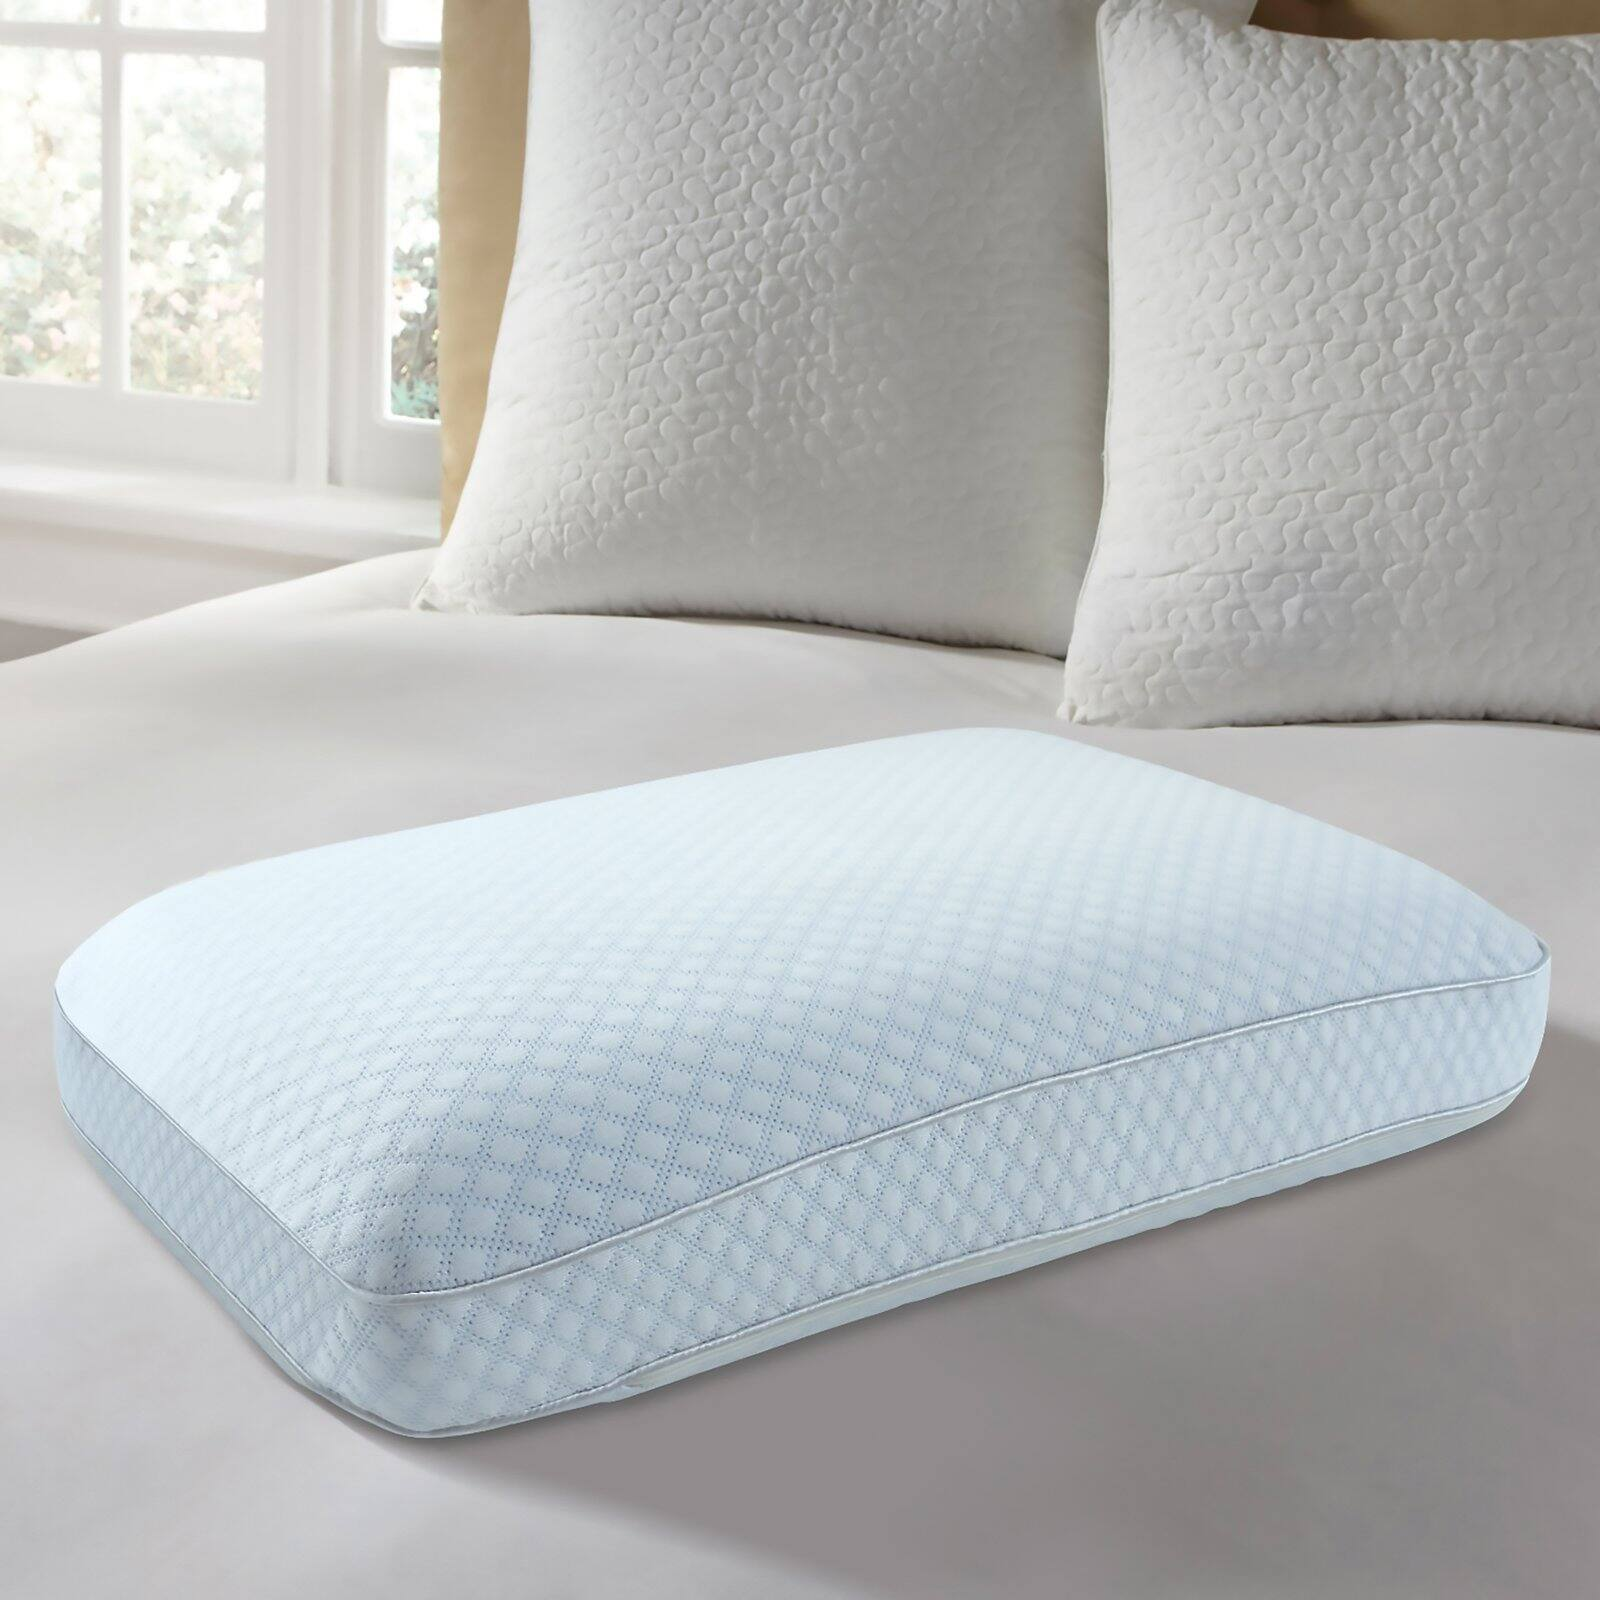 dream serenity cooling cover ventilated gel memory foam pillow queen